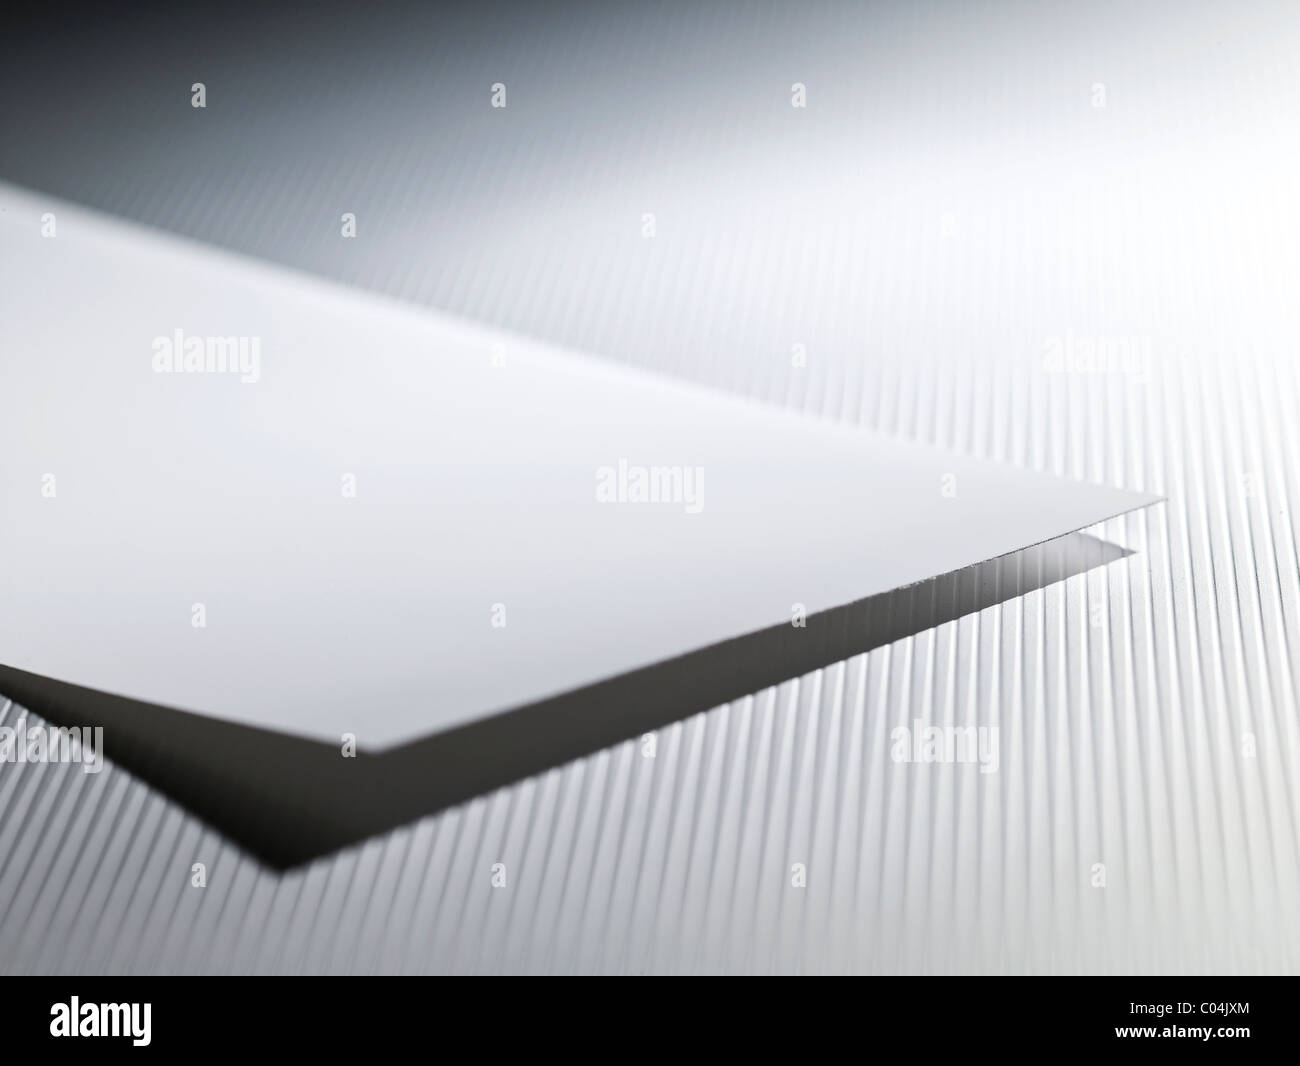 A paper on gray background - Stock Image